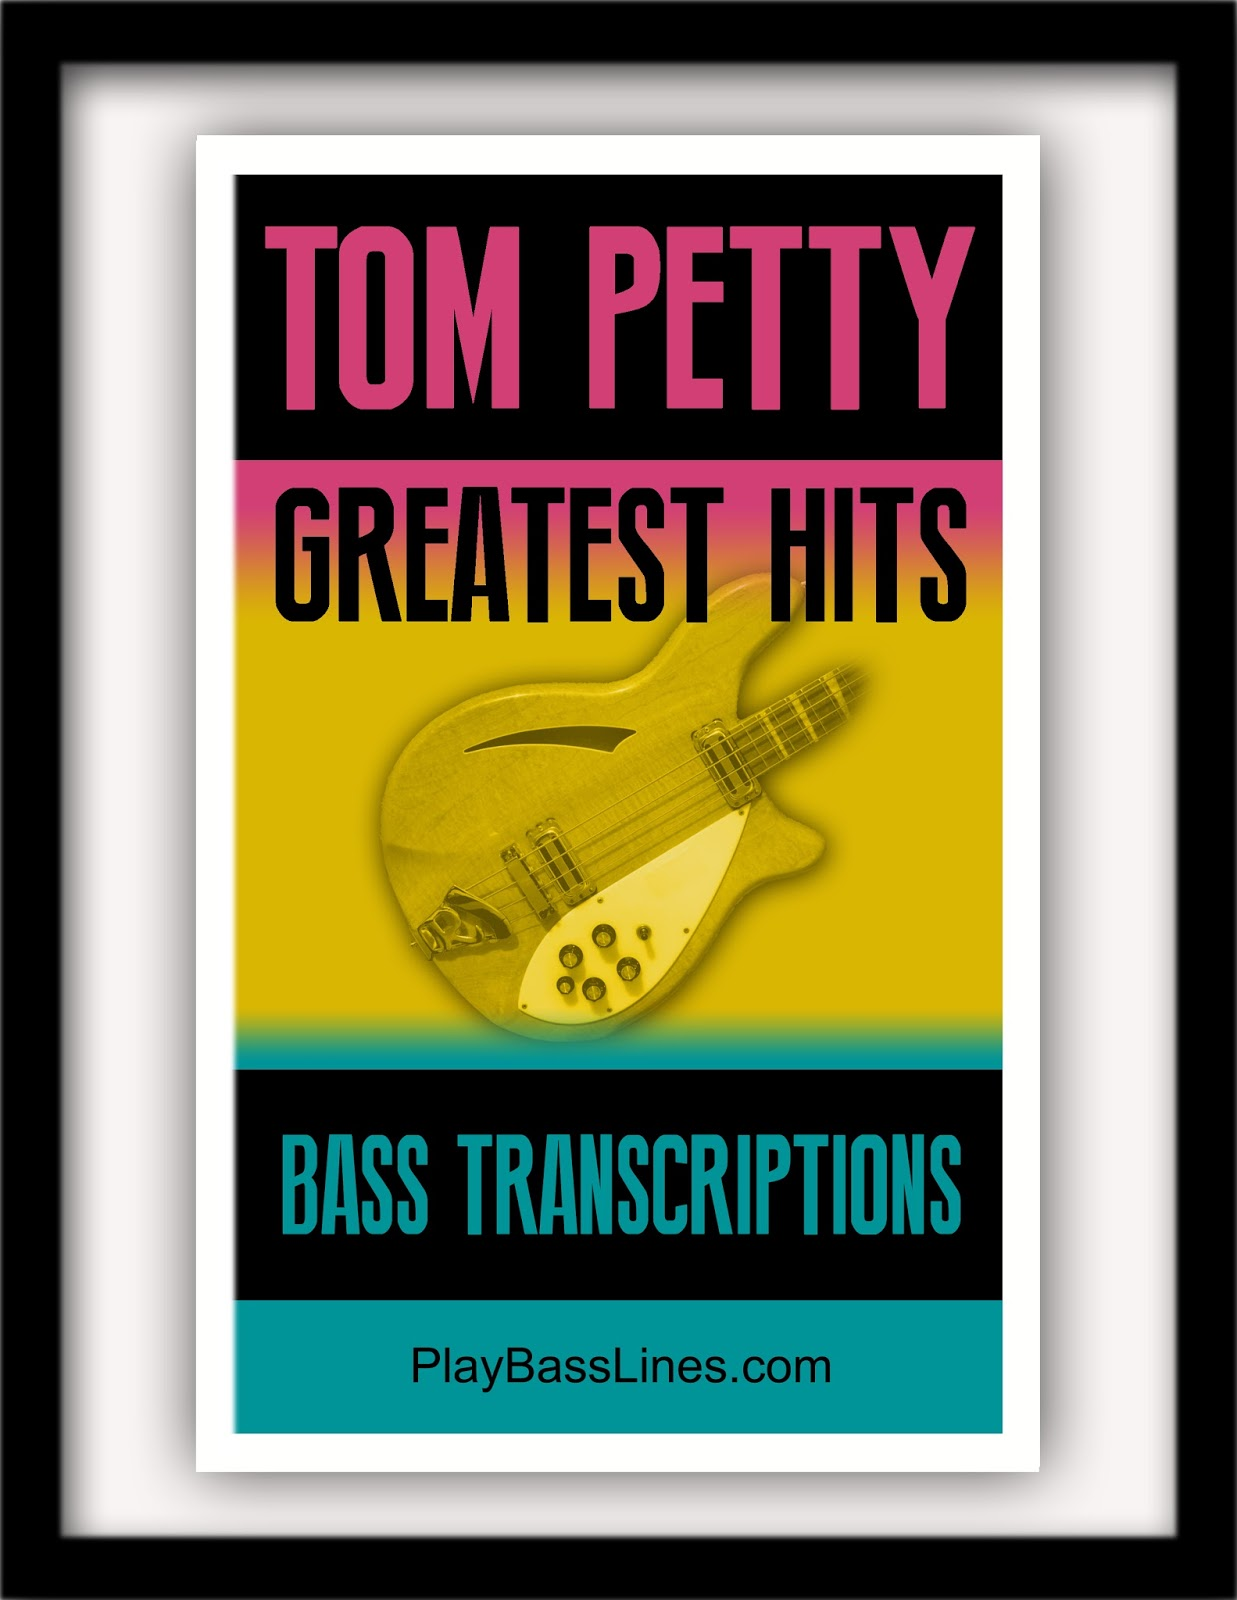 New release tom petty greatest hits bass transcriptions new release tom petty greatest hits bass transcriptions bass tabs hexwebz Image collections